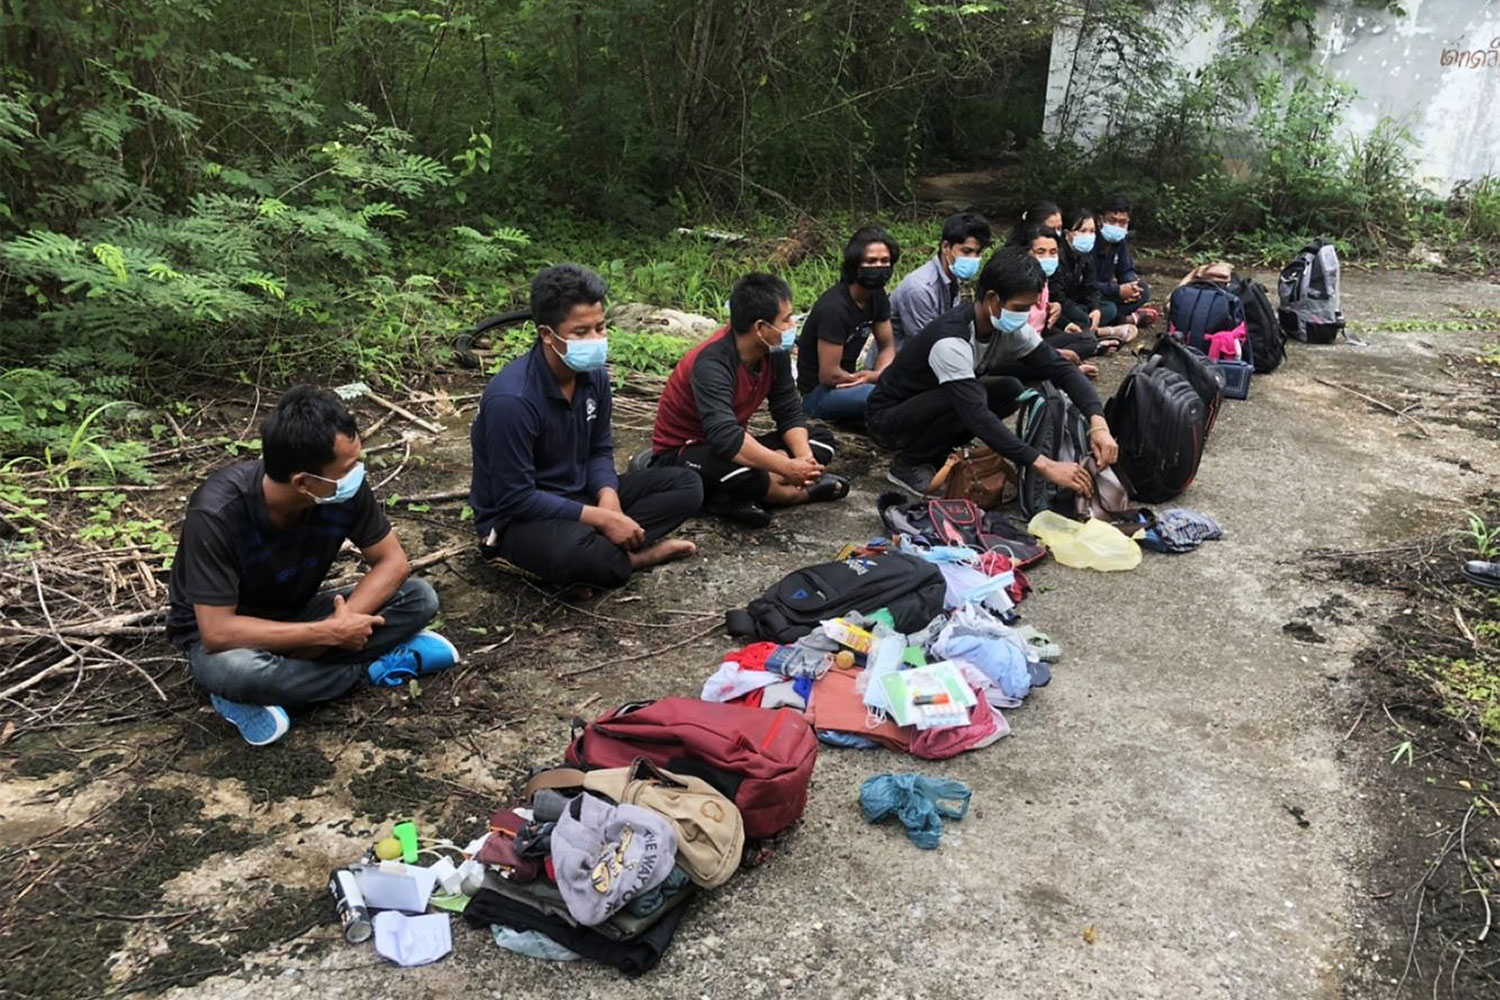 Grappling with human trafficking, forced labour